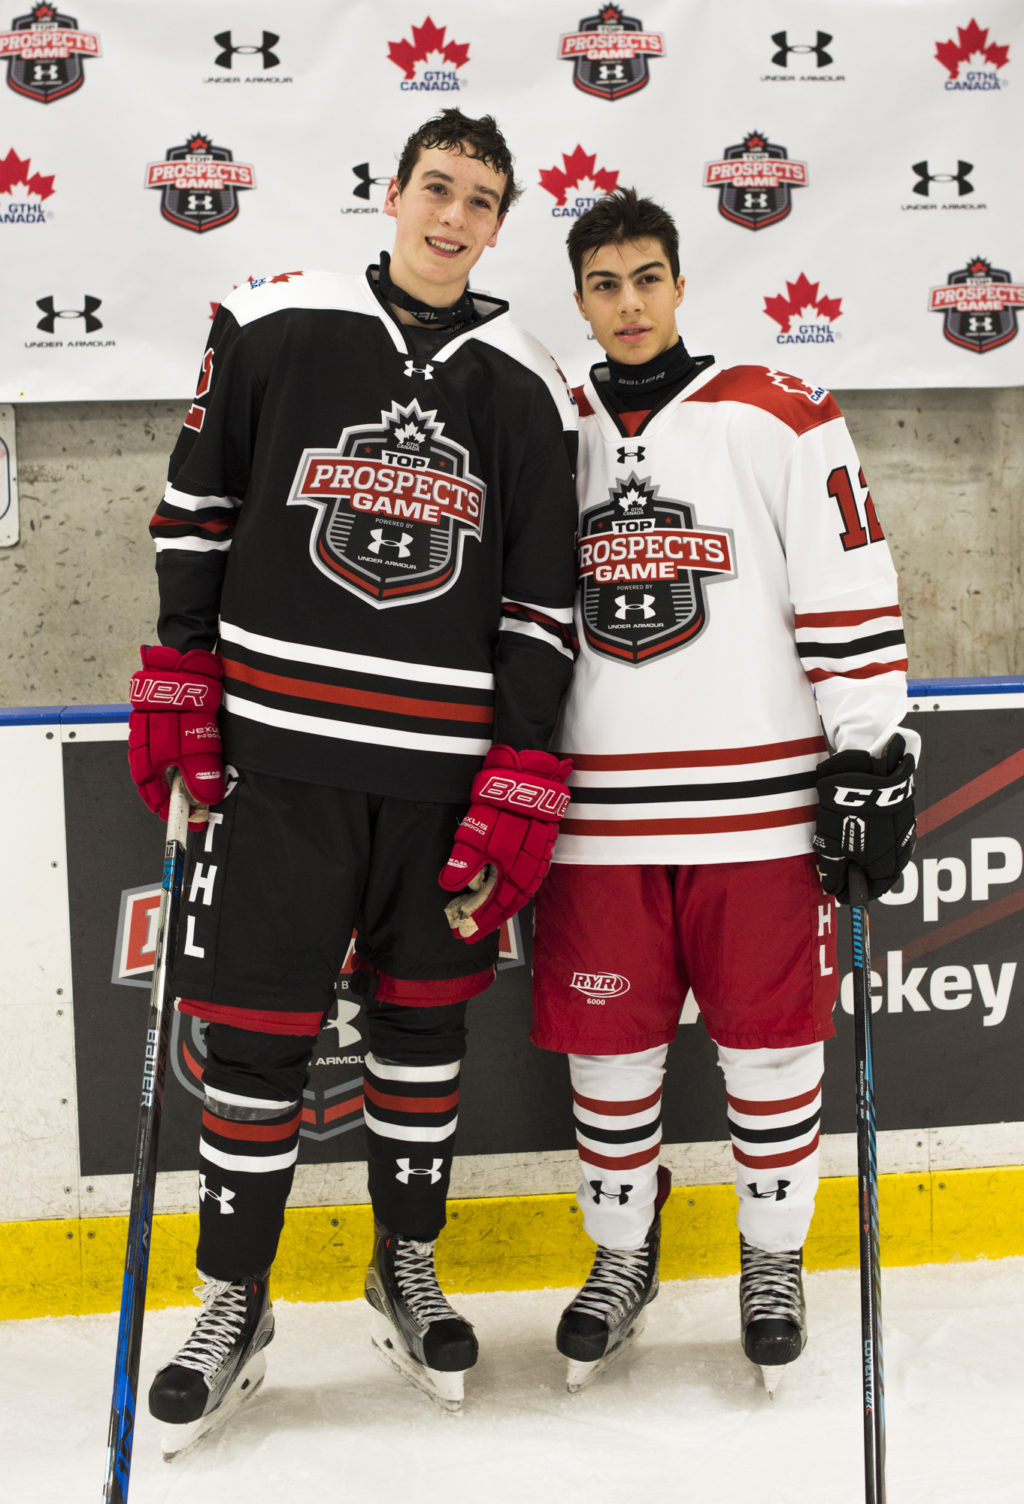 Mason Primeau (left) with Eric Ciccolini (right) at the 2016 GTHL Top Prospects Game, Powered by Under Armour.